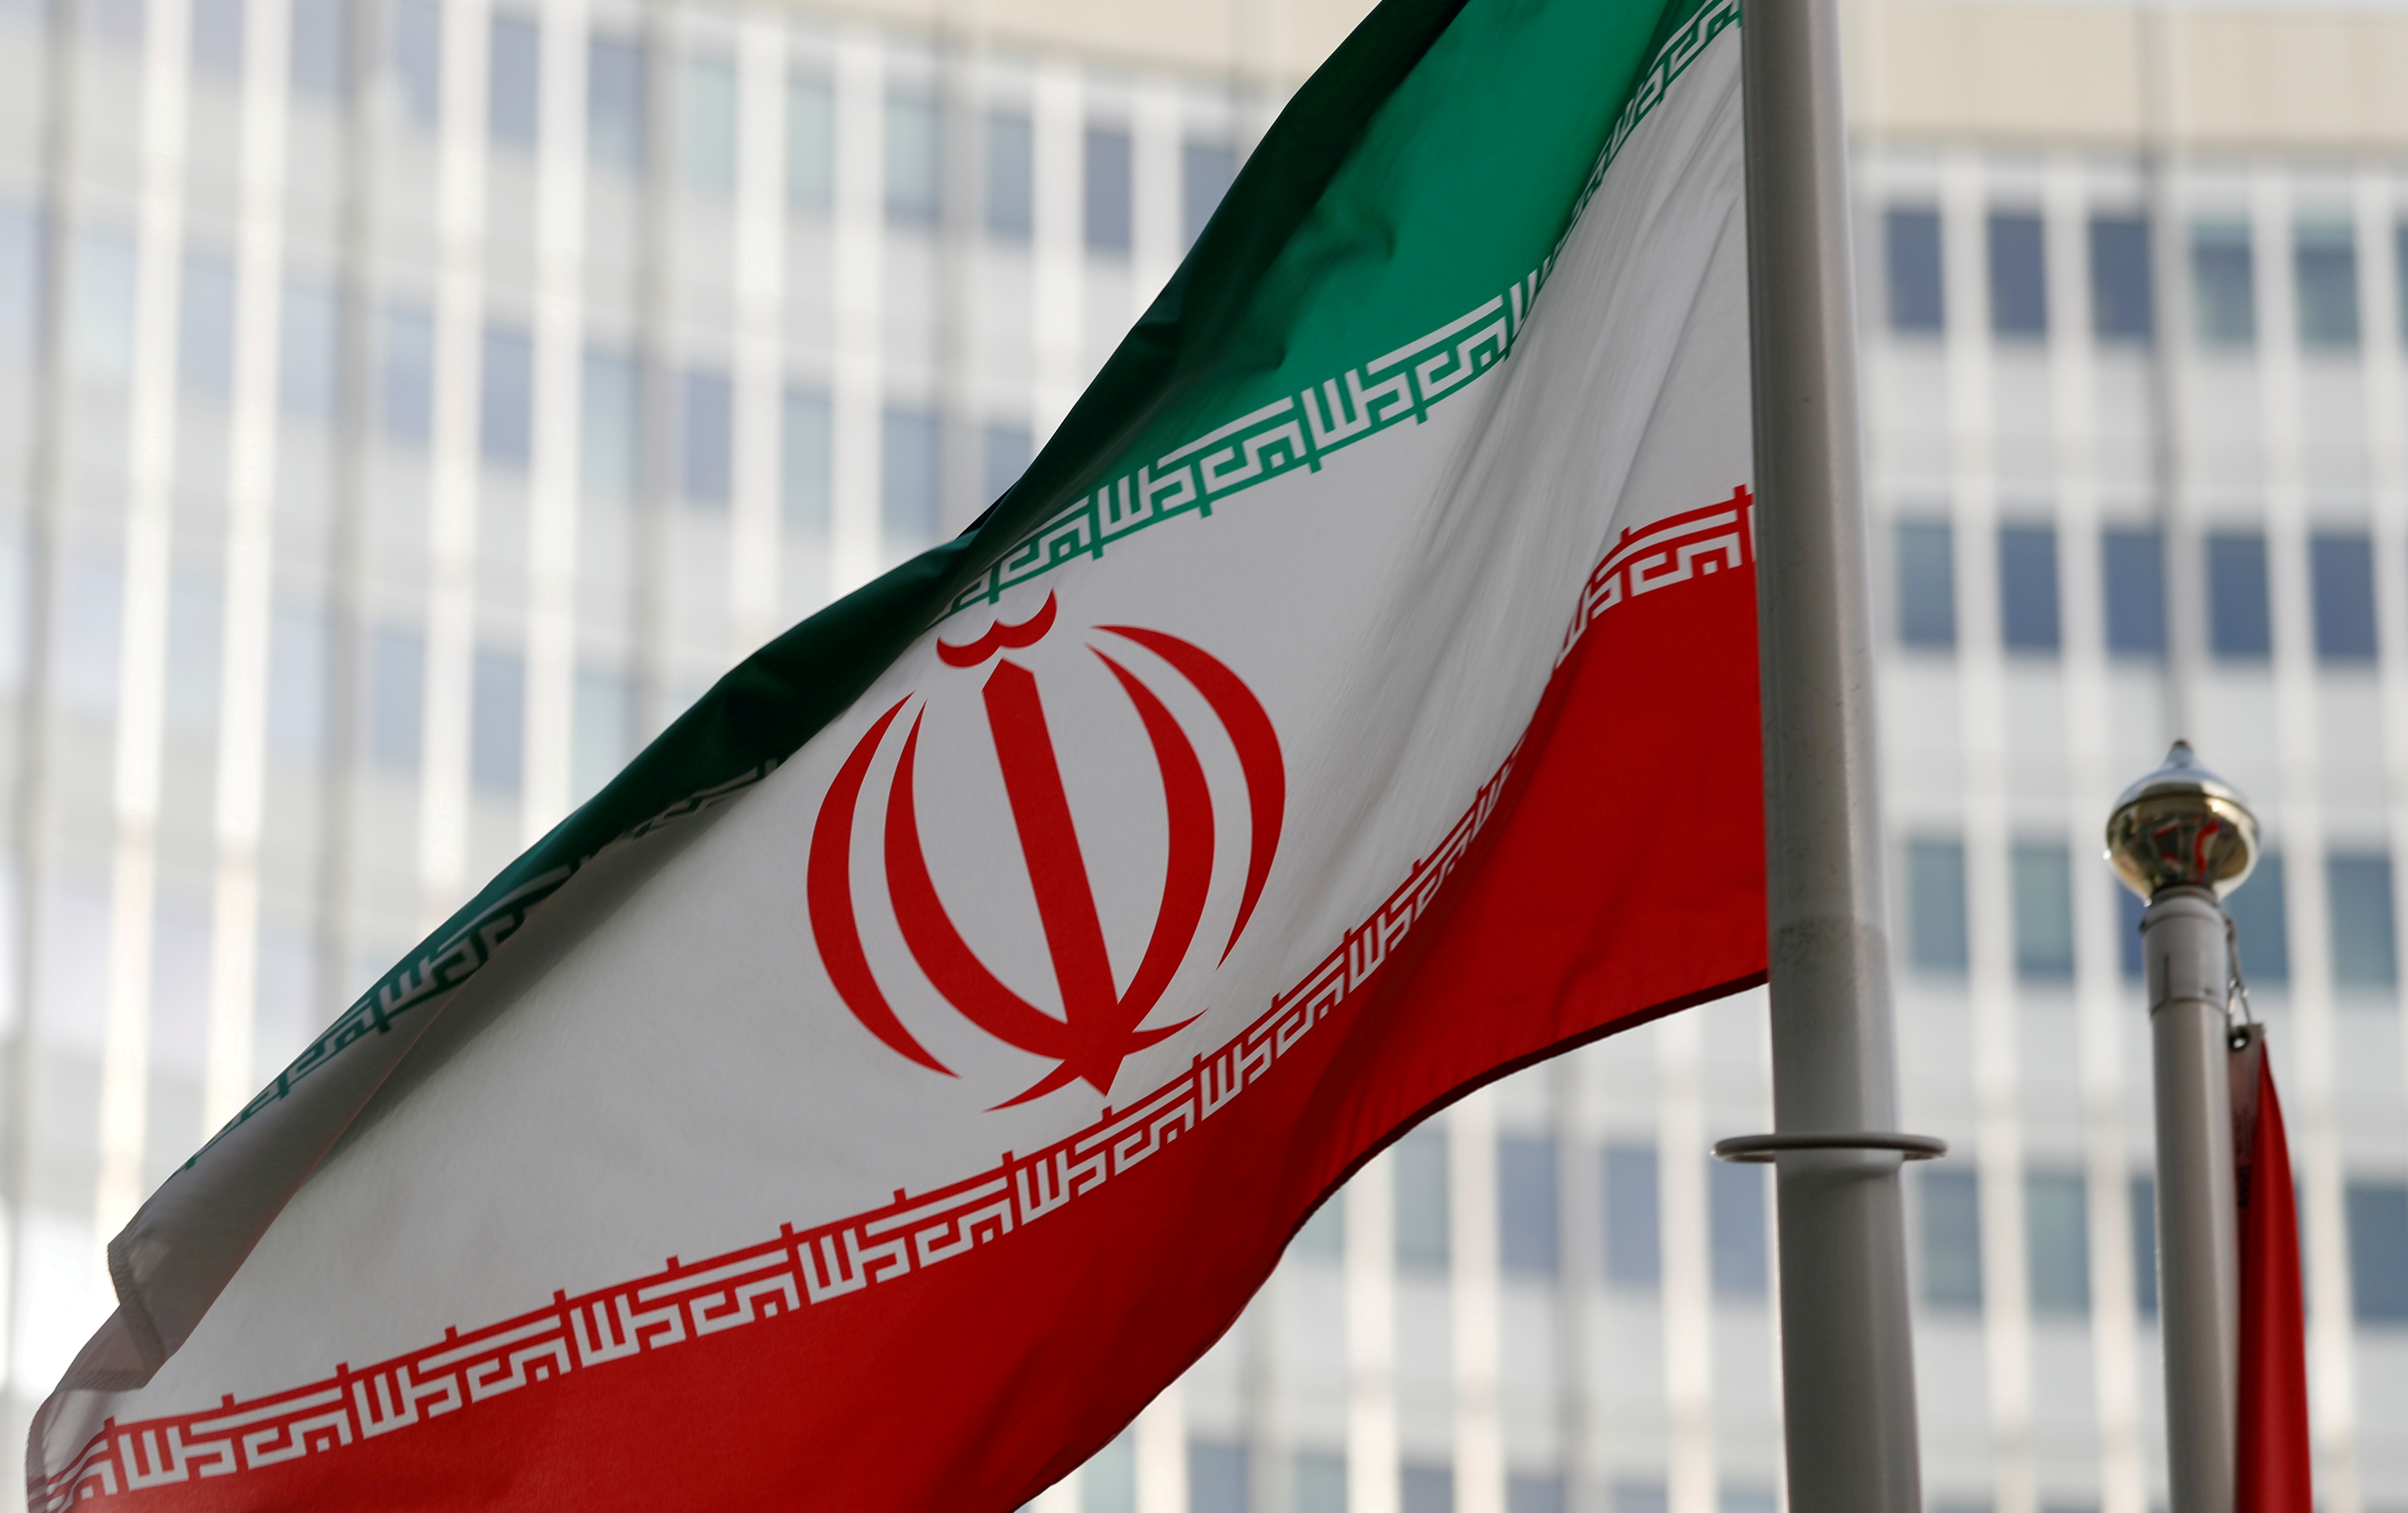 The Iranian flag flutters in front the International Atomic Energy Agency (IAEA) headquarters in Vienna, Austria March 4, 2019. REUTERS/Leonhard Foeger/File Photo